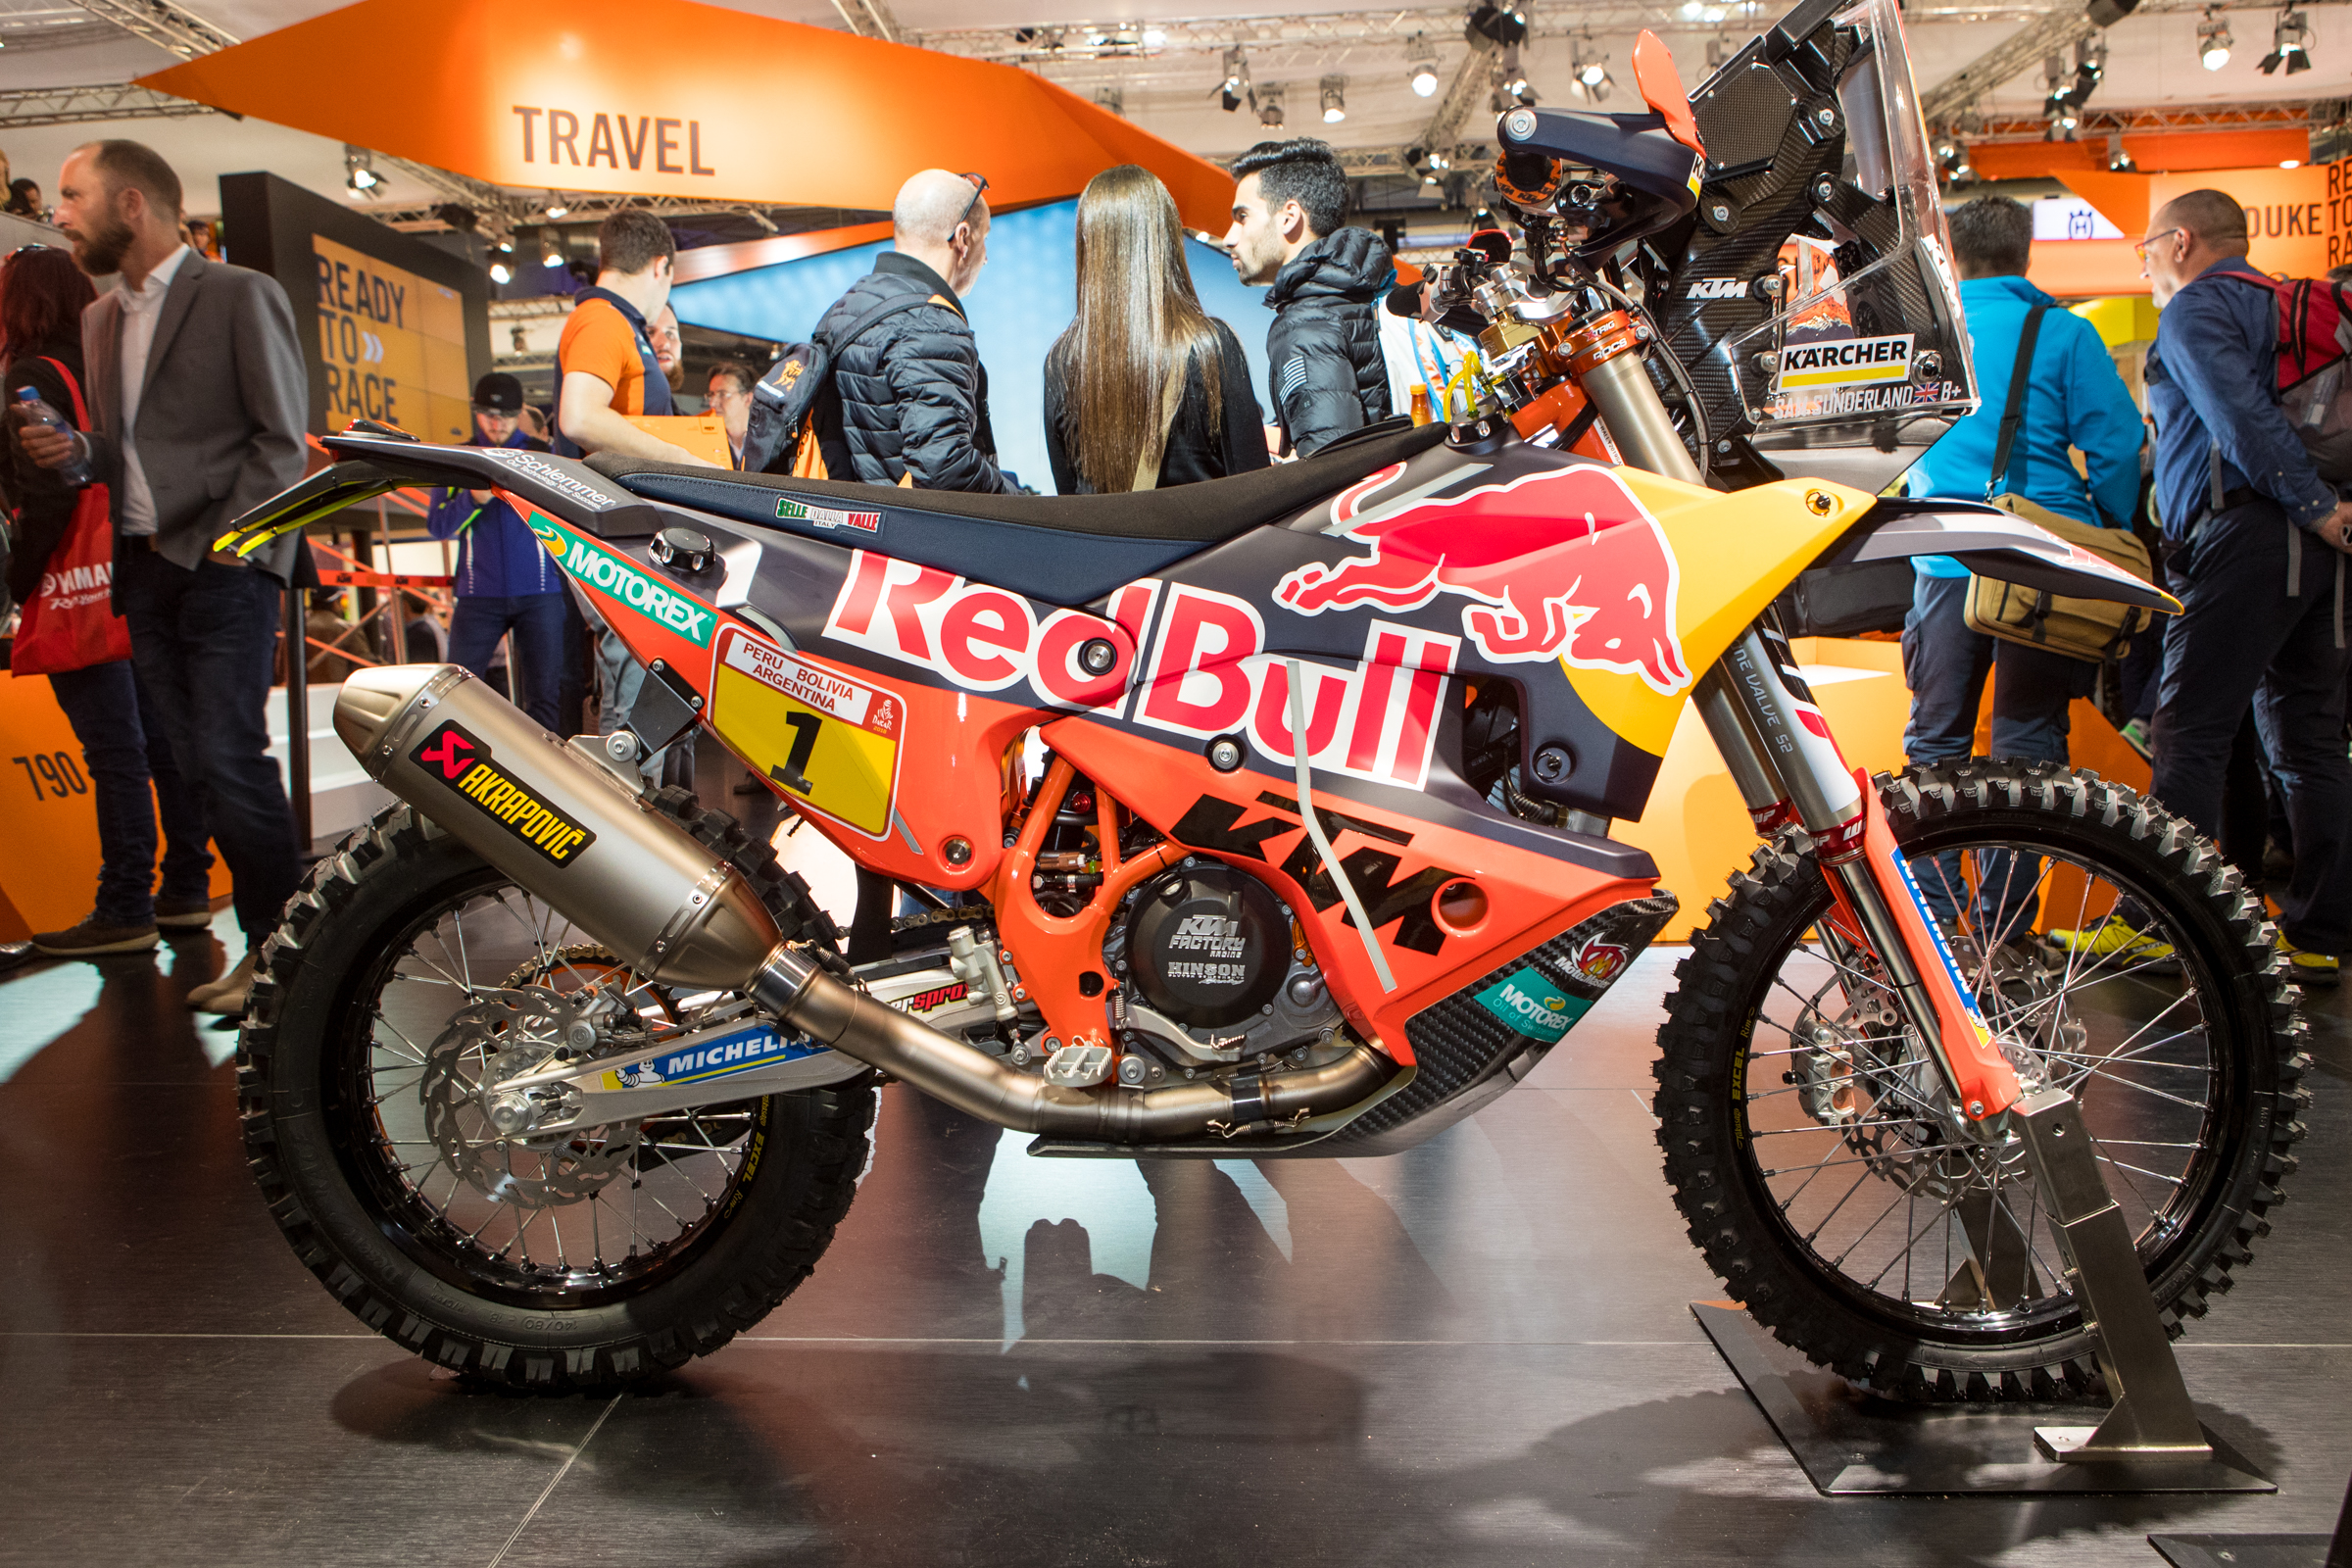 Speaking of Dakar, KTM showed off their latest 450 Rally machine which they just did a warm-up Rally on ahead of the Dakar this January. This machine takes the latest moto technology and a slew of one-off technology to make one heck of a machine.